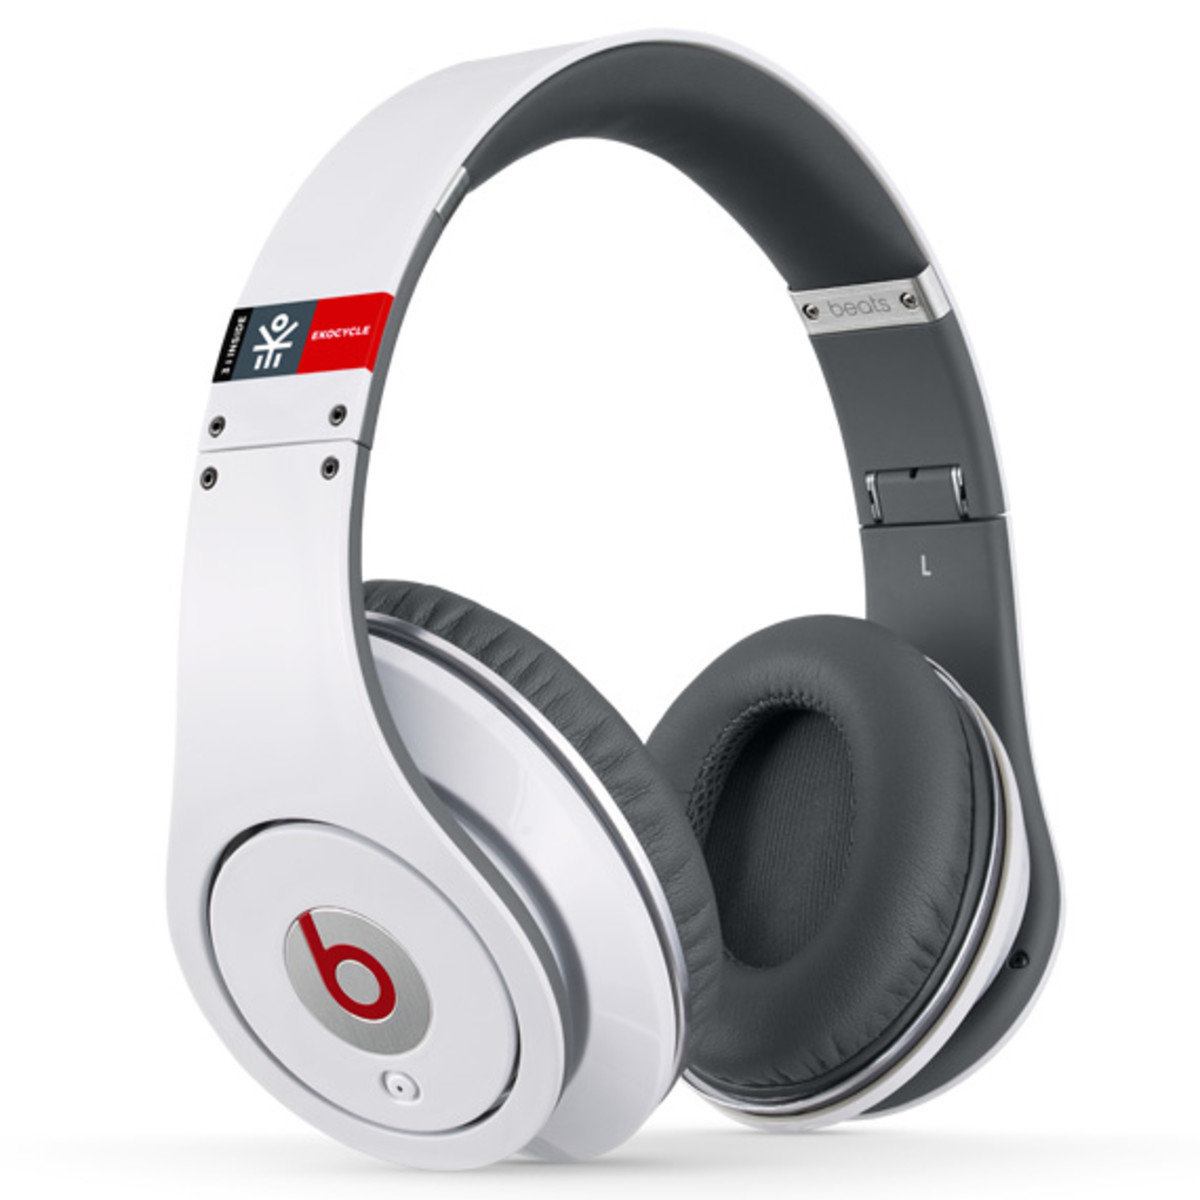 beats-by-dr-dre-studio-headphones-ekocycle-edition-william-coca-cola-01